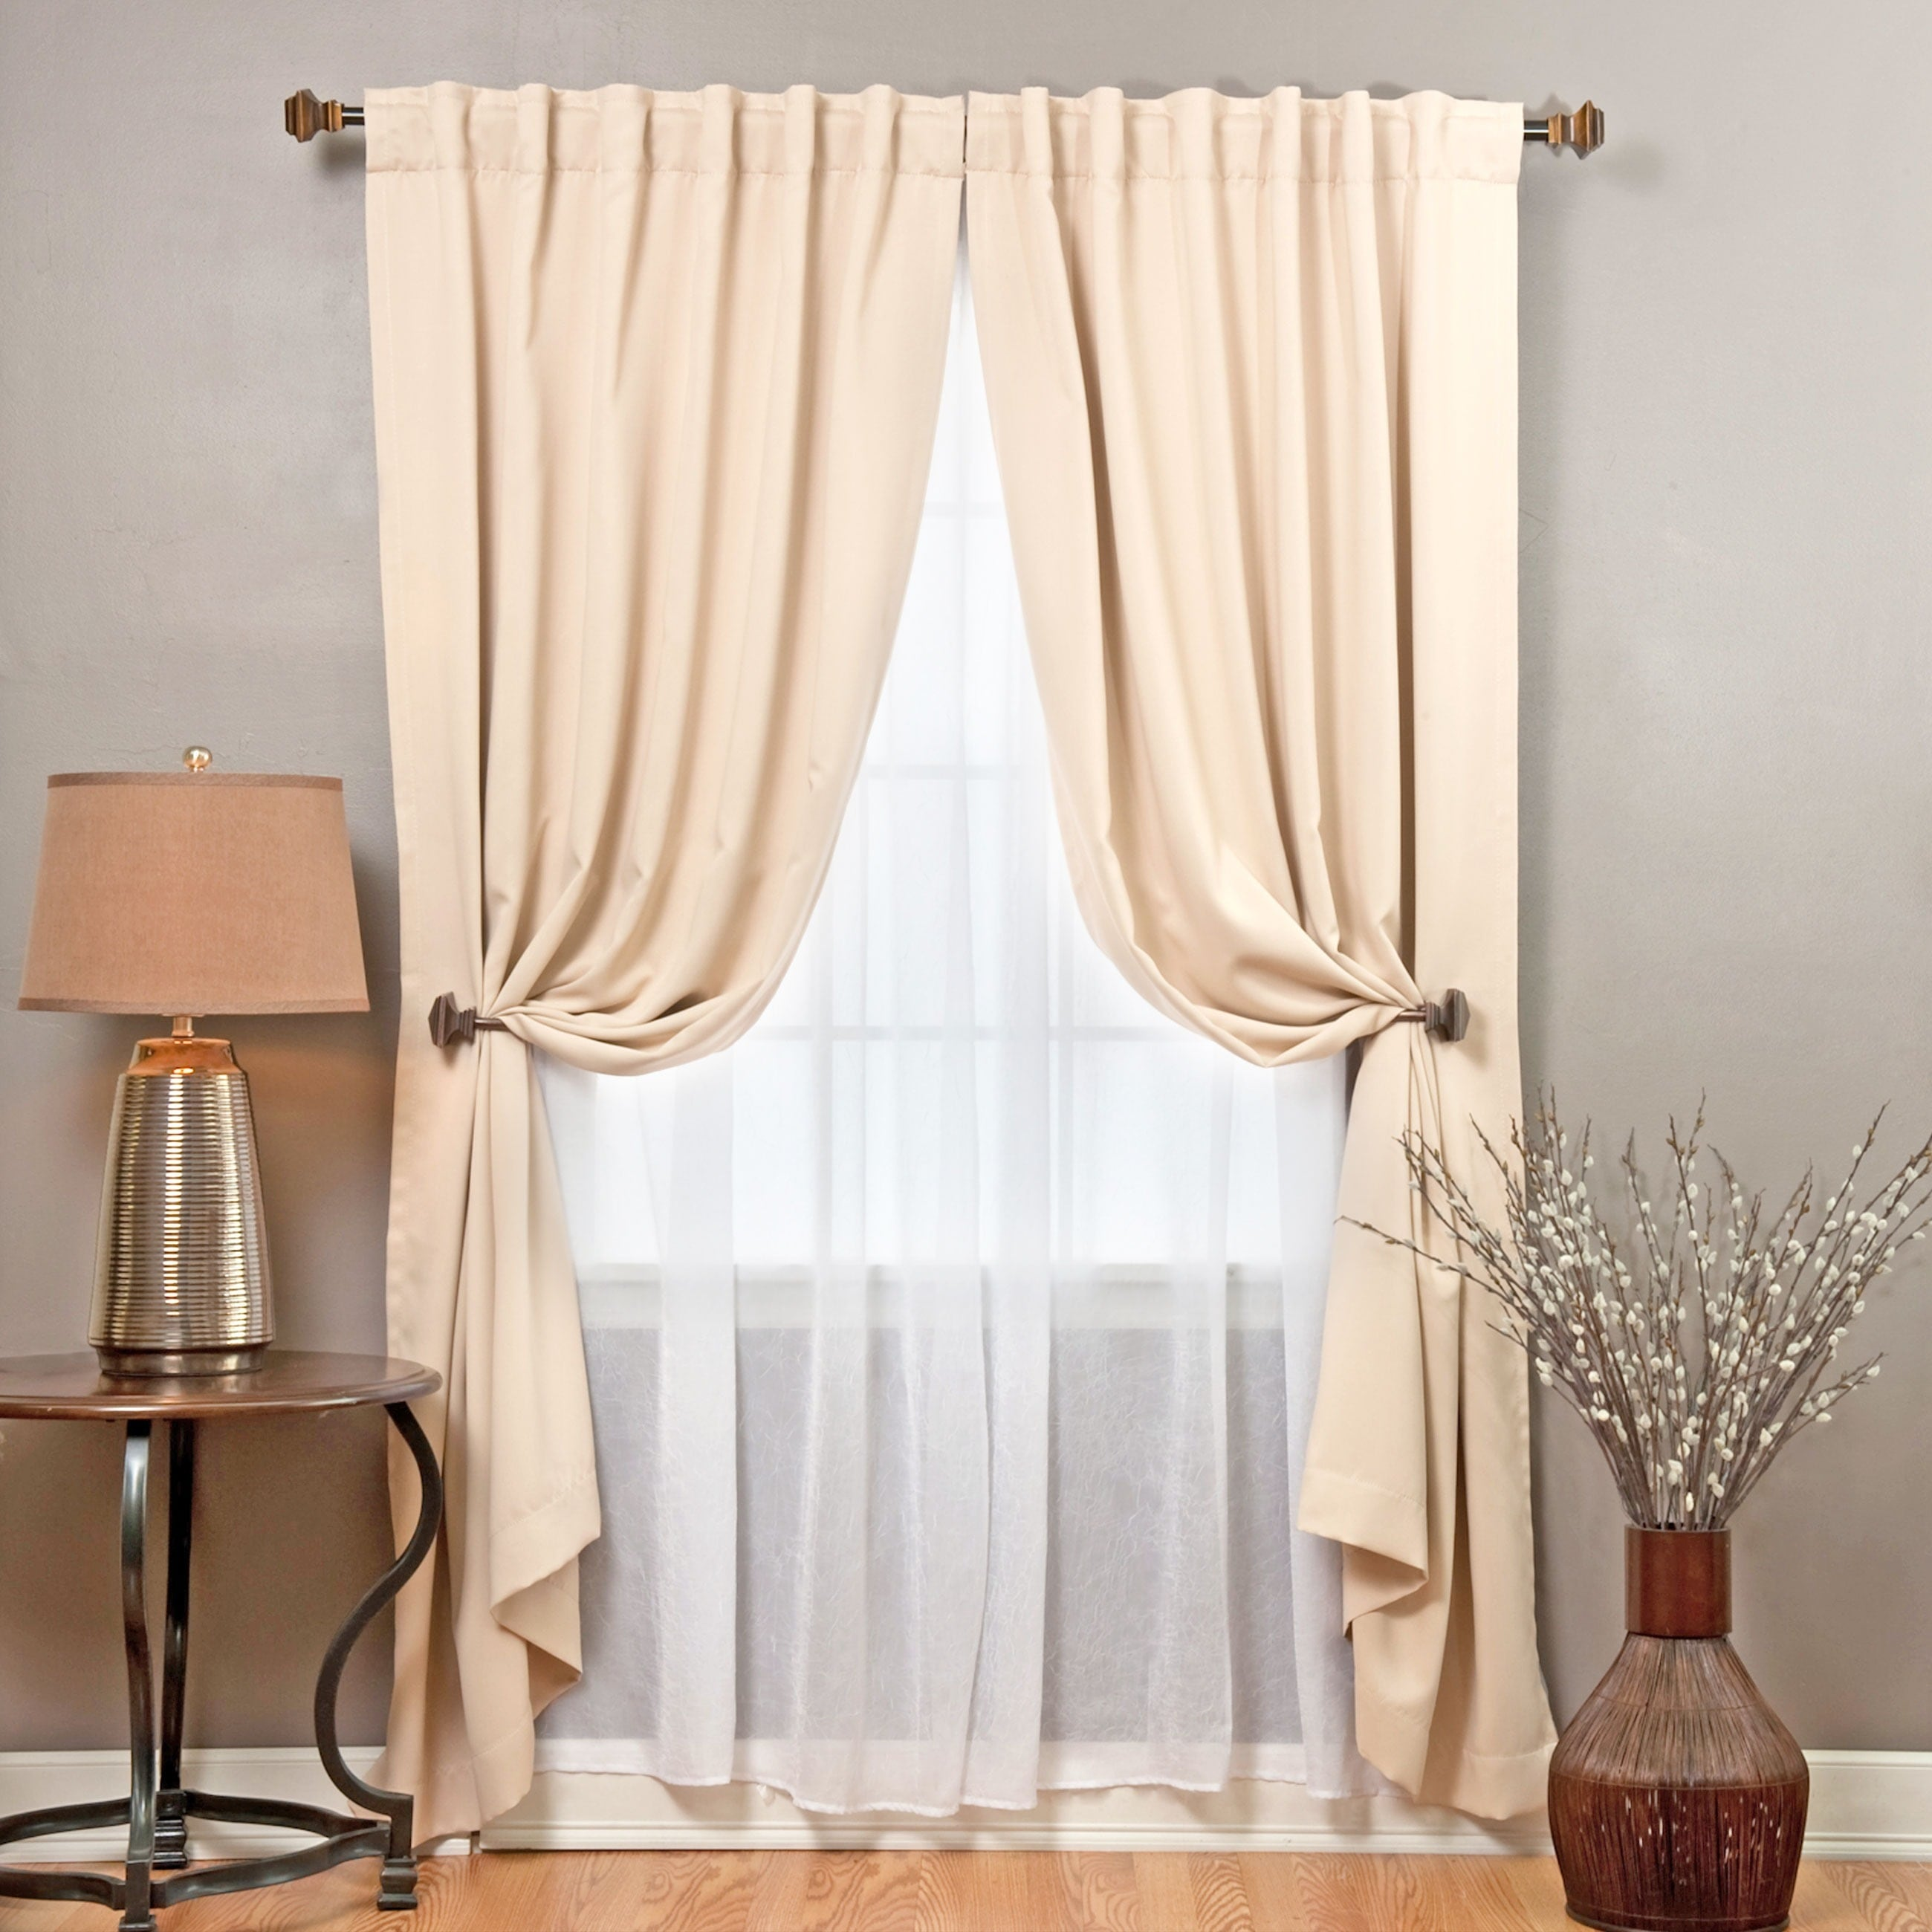 x pocket elements diamond sheer panel rod voile curtain window curtains in pin